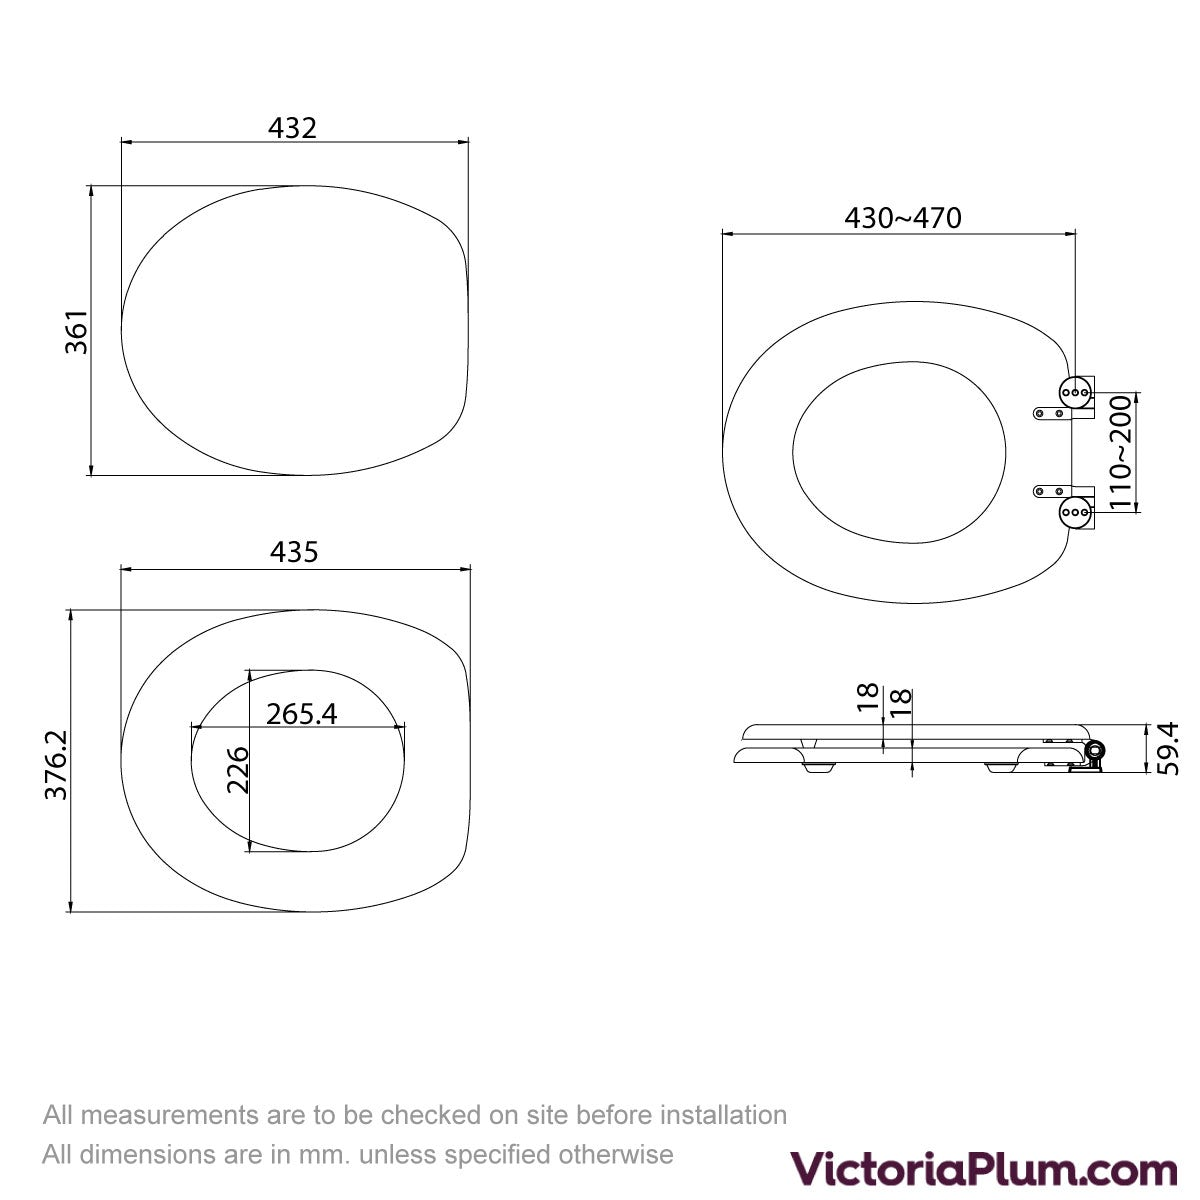 Dimensions for Blue nautical acrylic toilet seat with soft close hinge